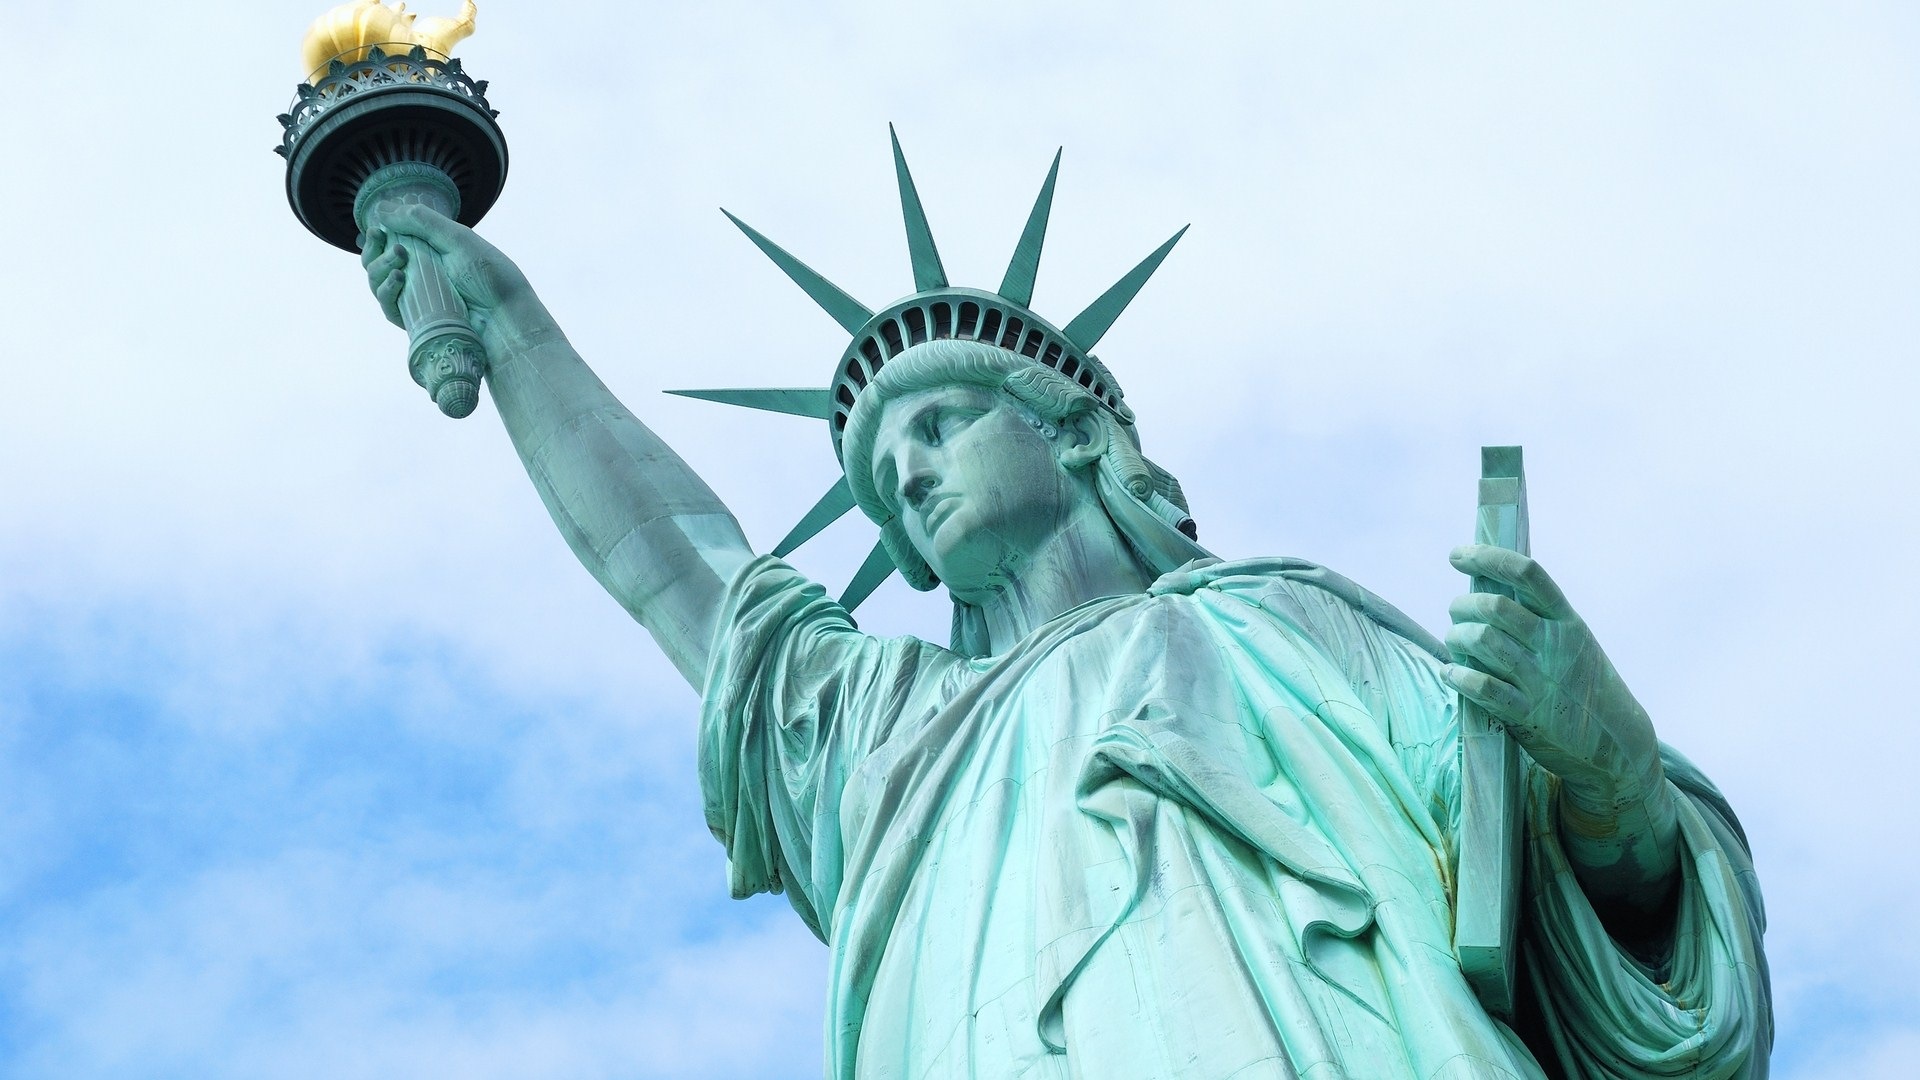 statue of liberty wallpaper 38293 1920x1080px